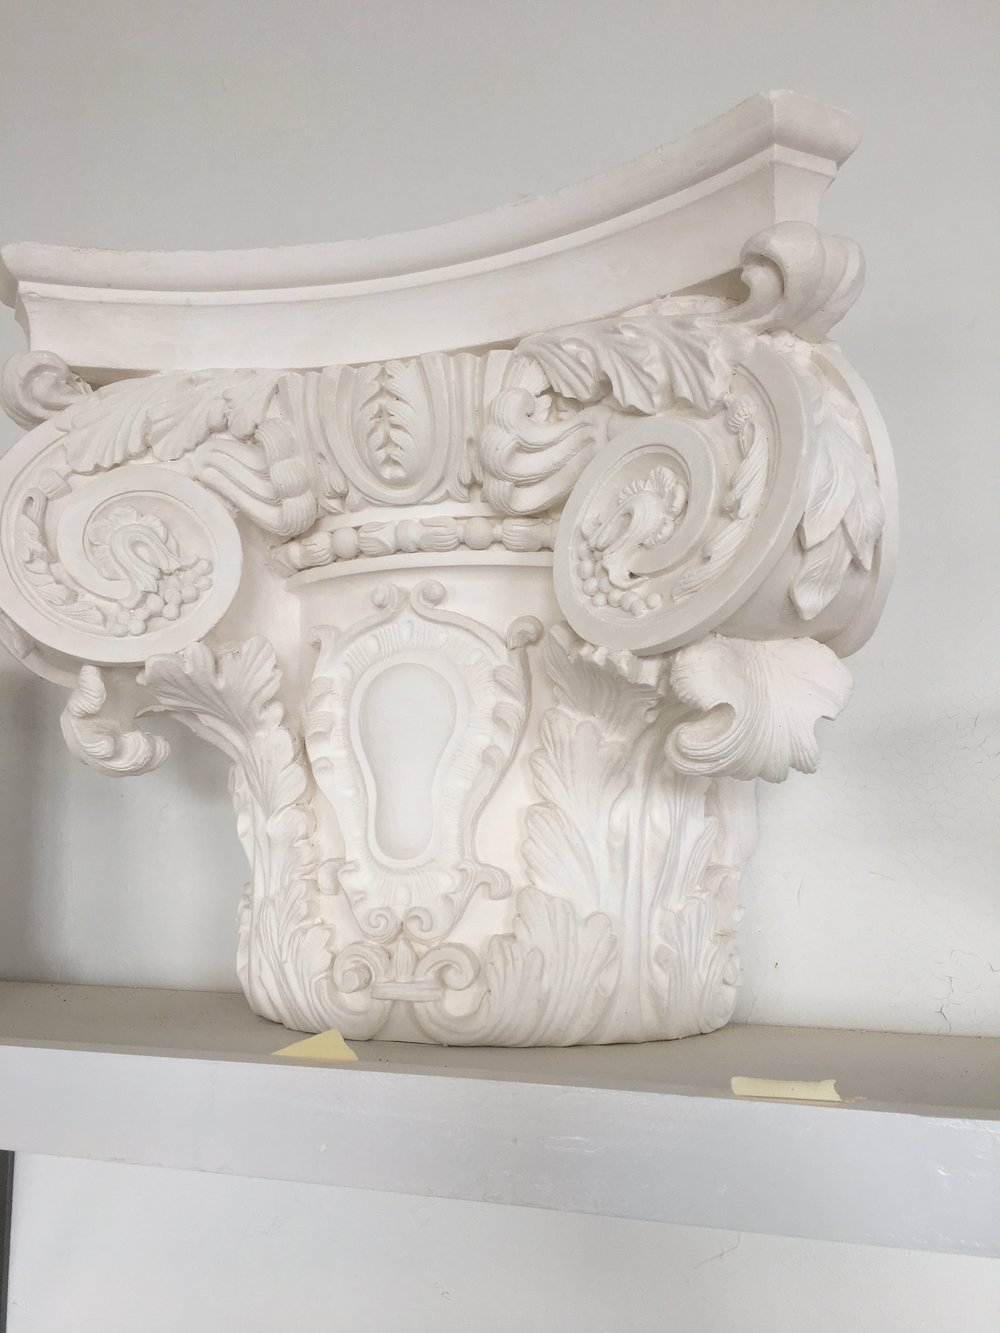 One of the many plaster capitals we've designed